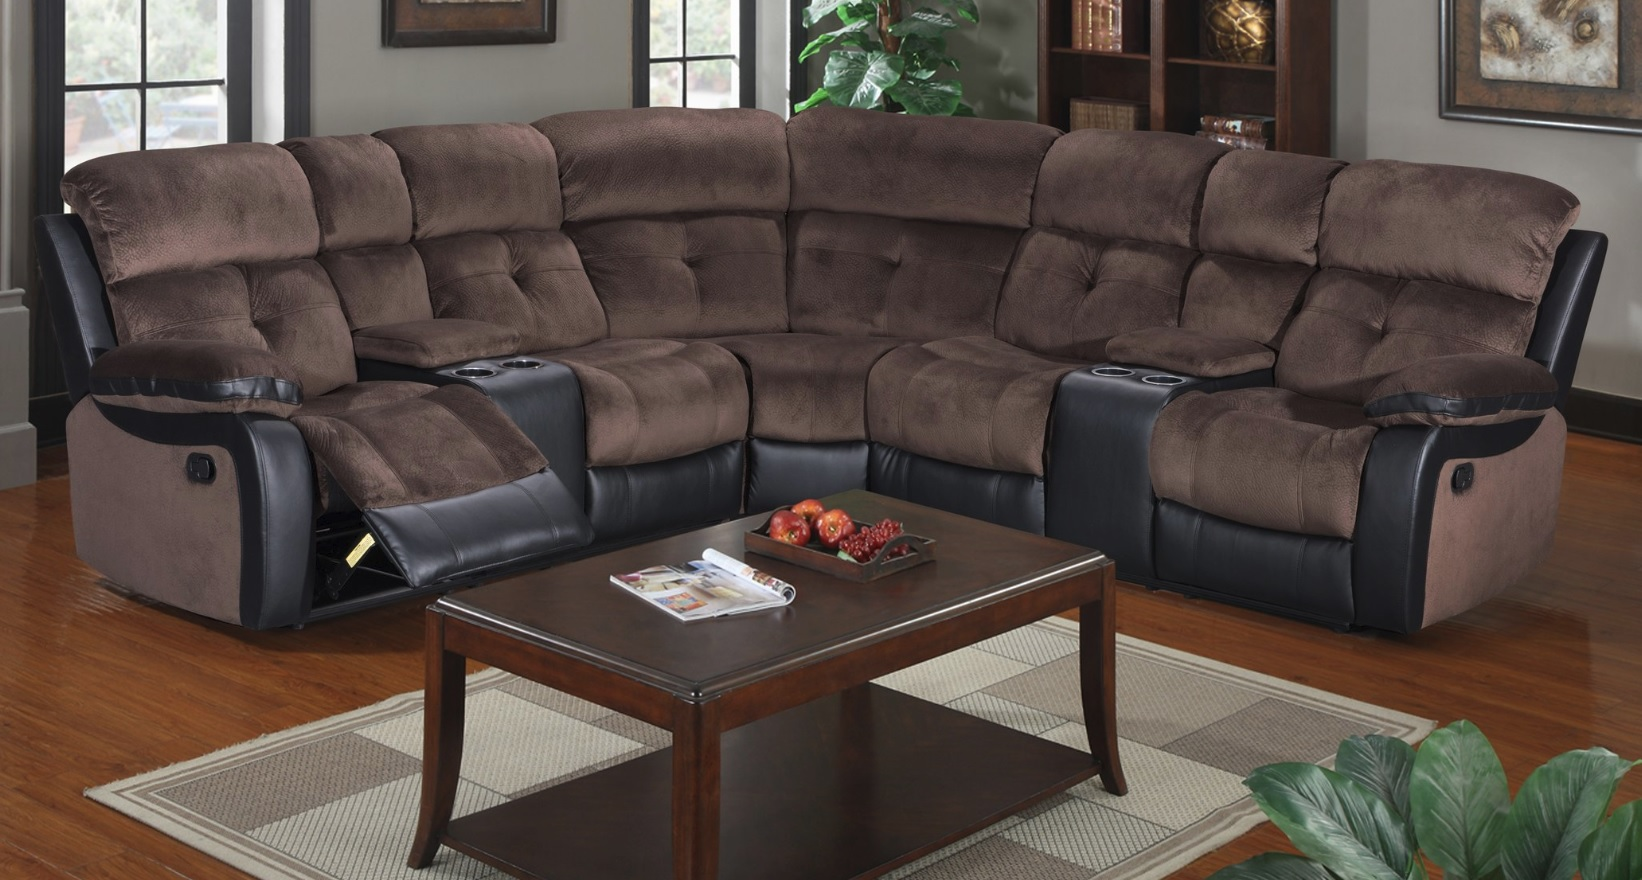 Chocolate Microfiber Sectional w/ Cup Holders & 2 Recliners